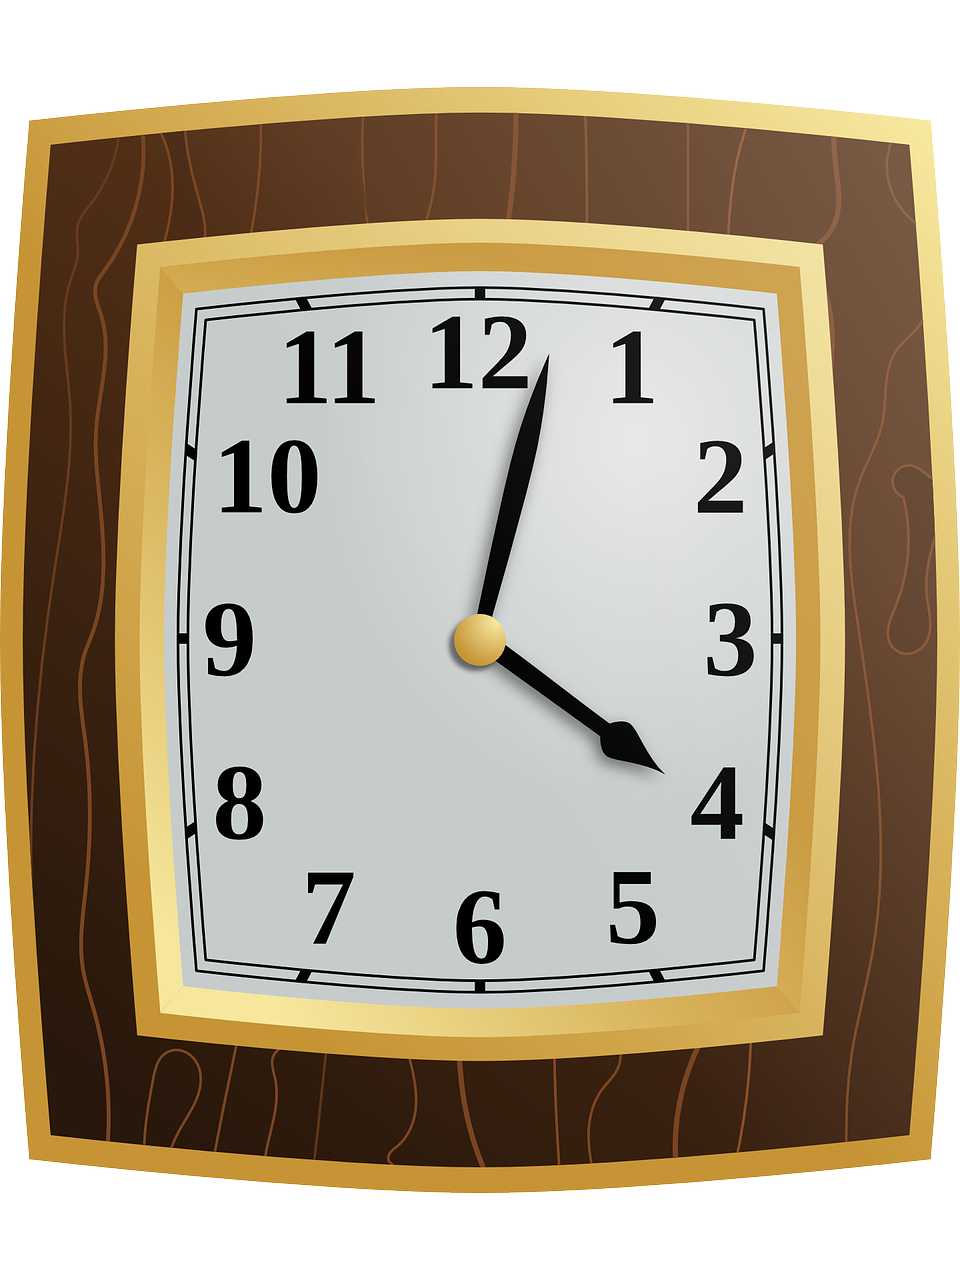 Clocks clipart retirement. Moving the how and